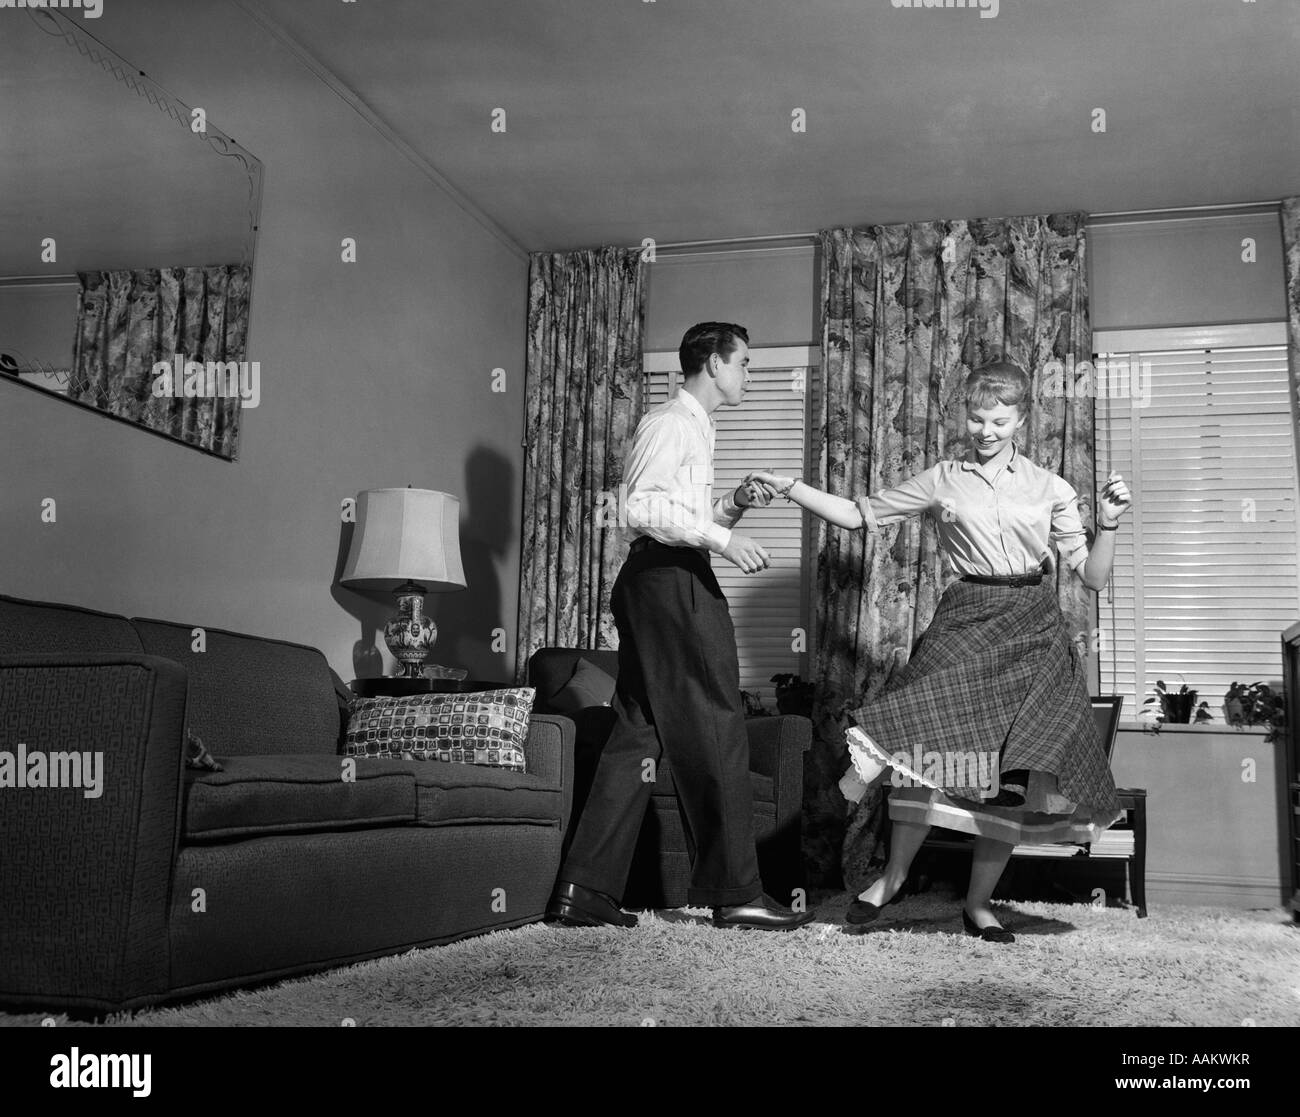 Living Room 1950s 1950s teenage couple jitterbug dancing together in living room